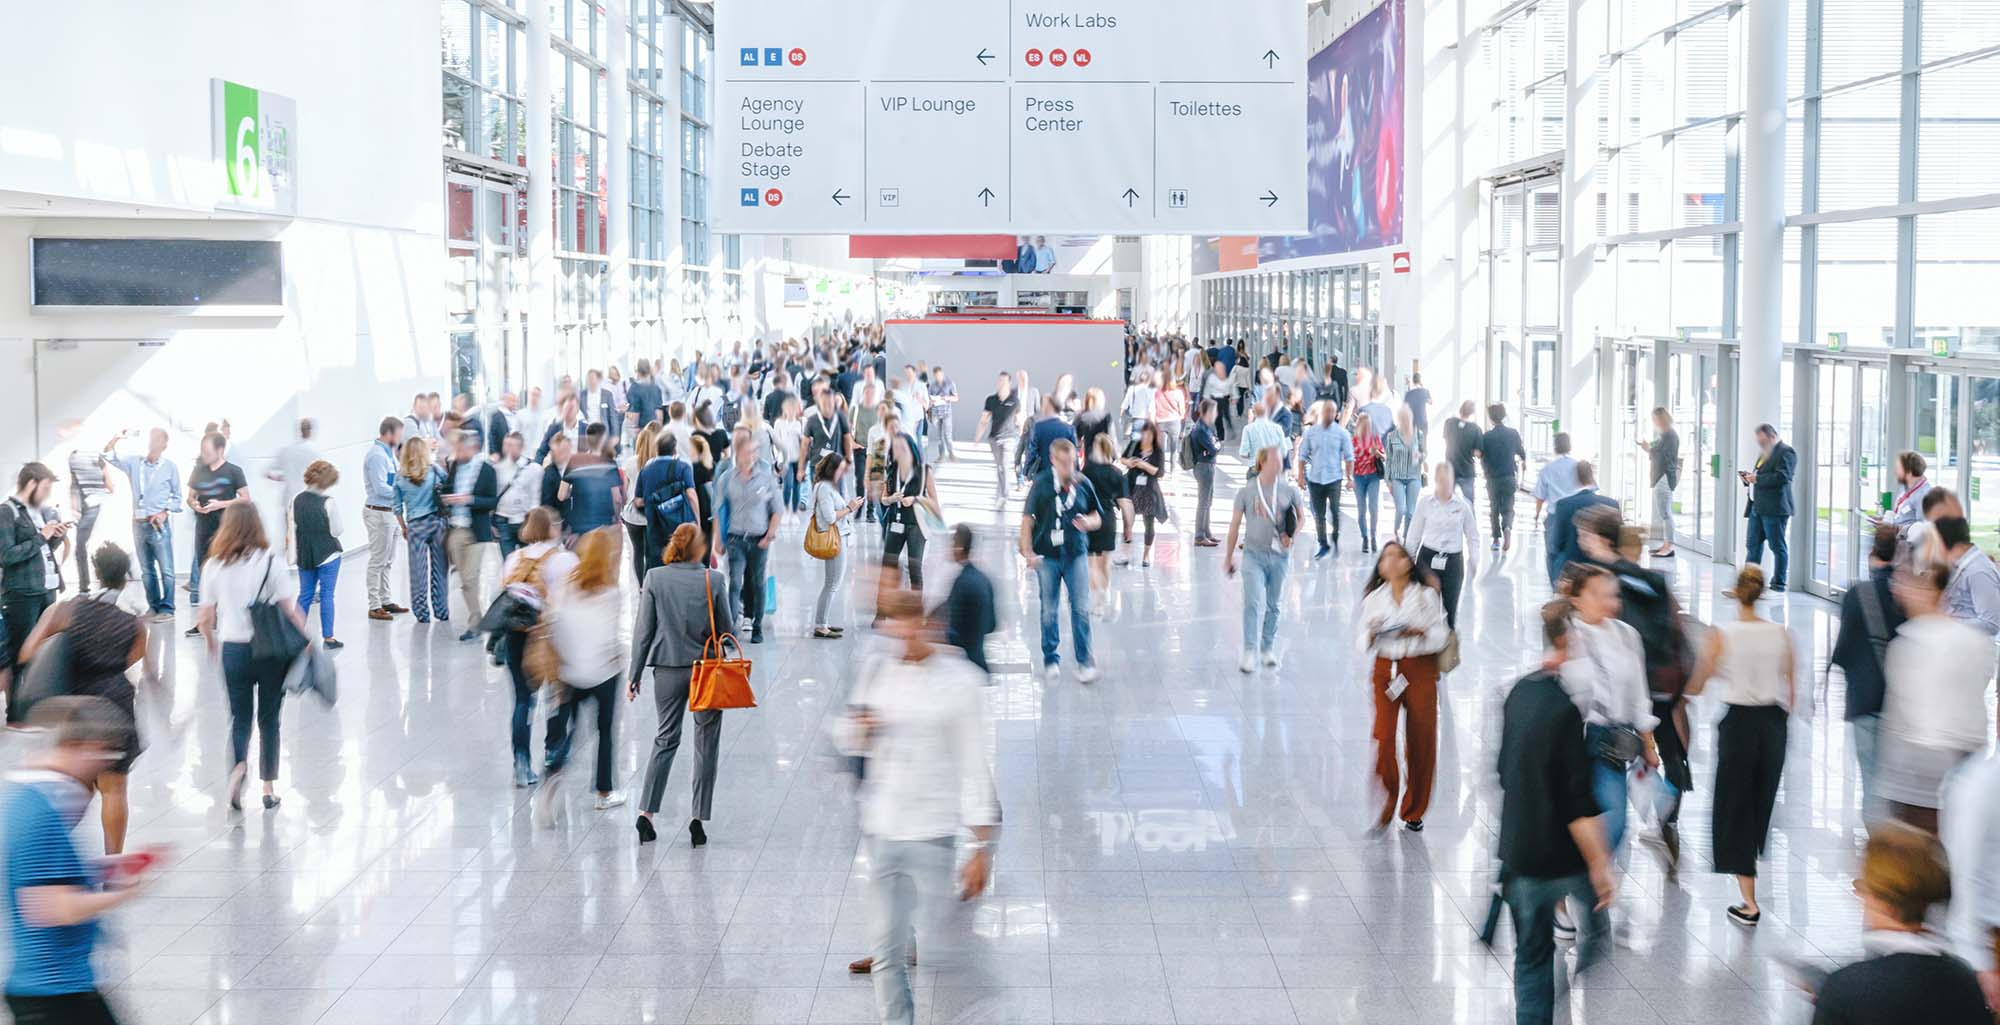 Trade shows are target-rich environments